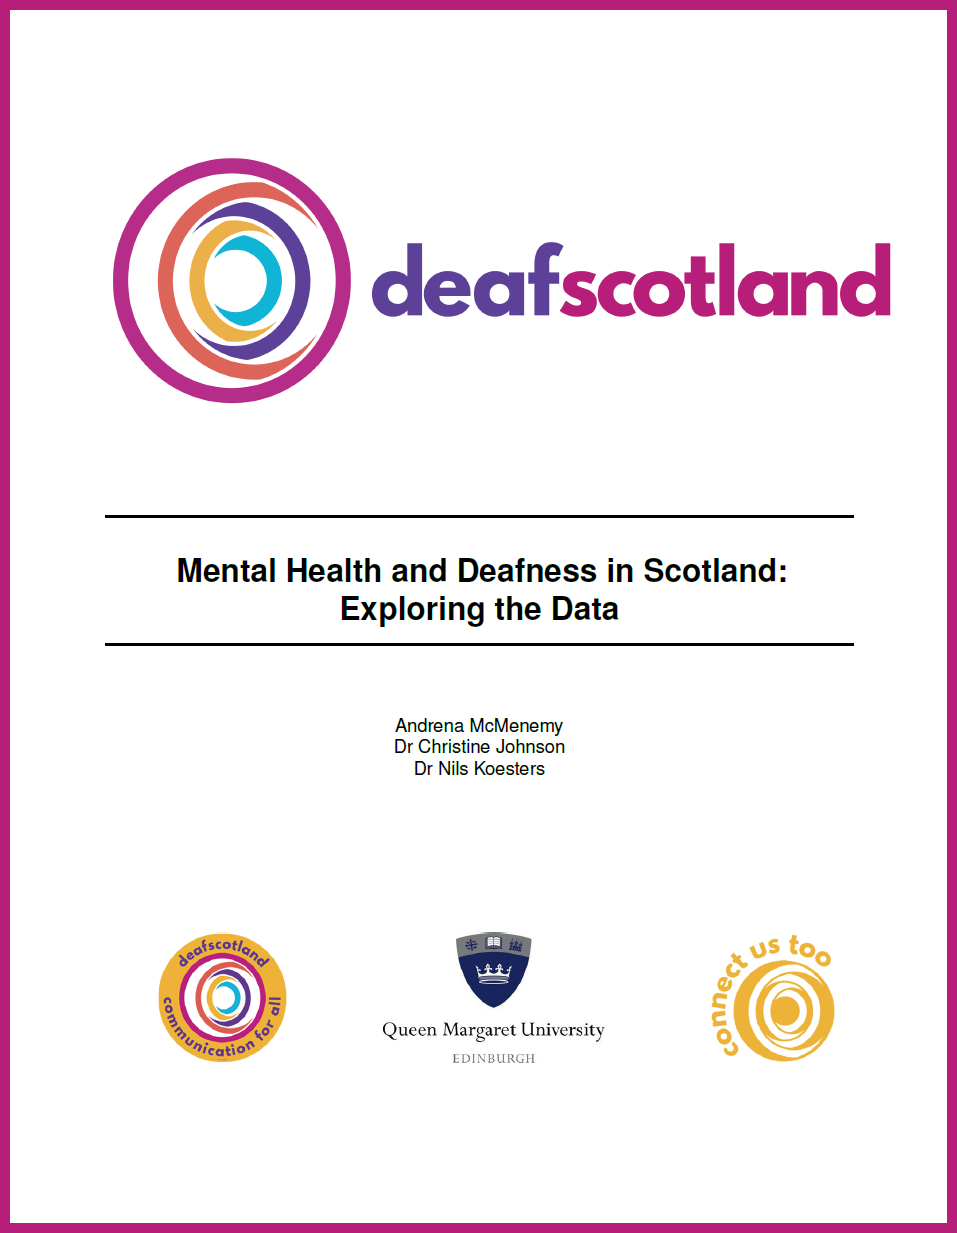 Mental Health and Deafness in Scotland